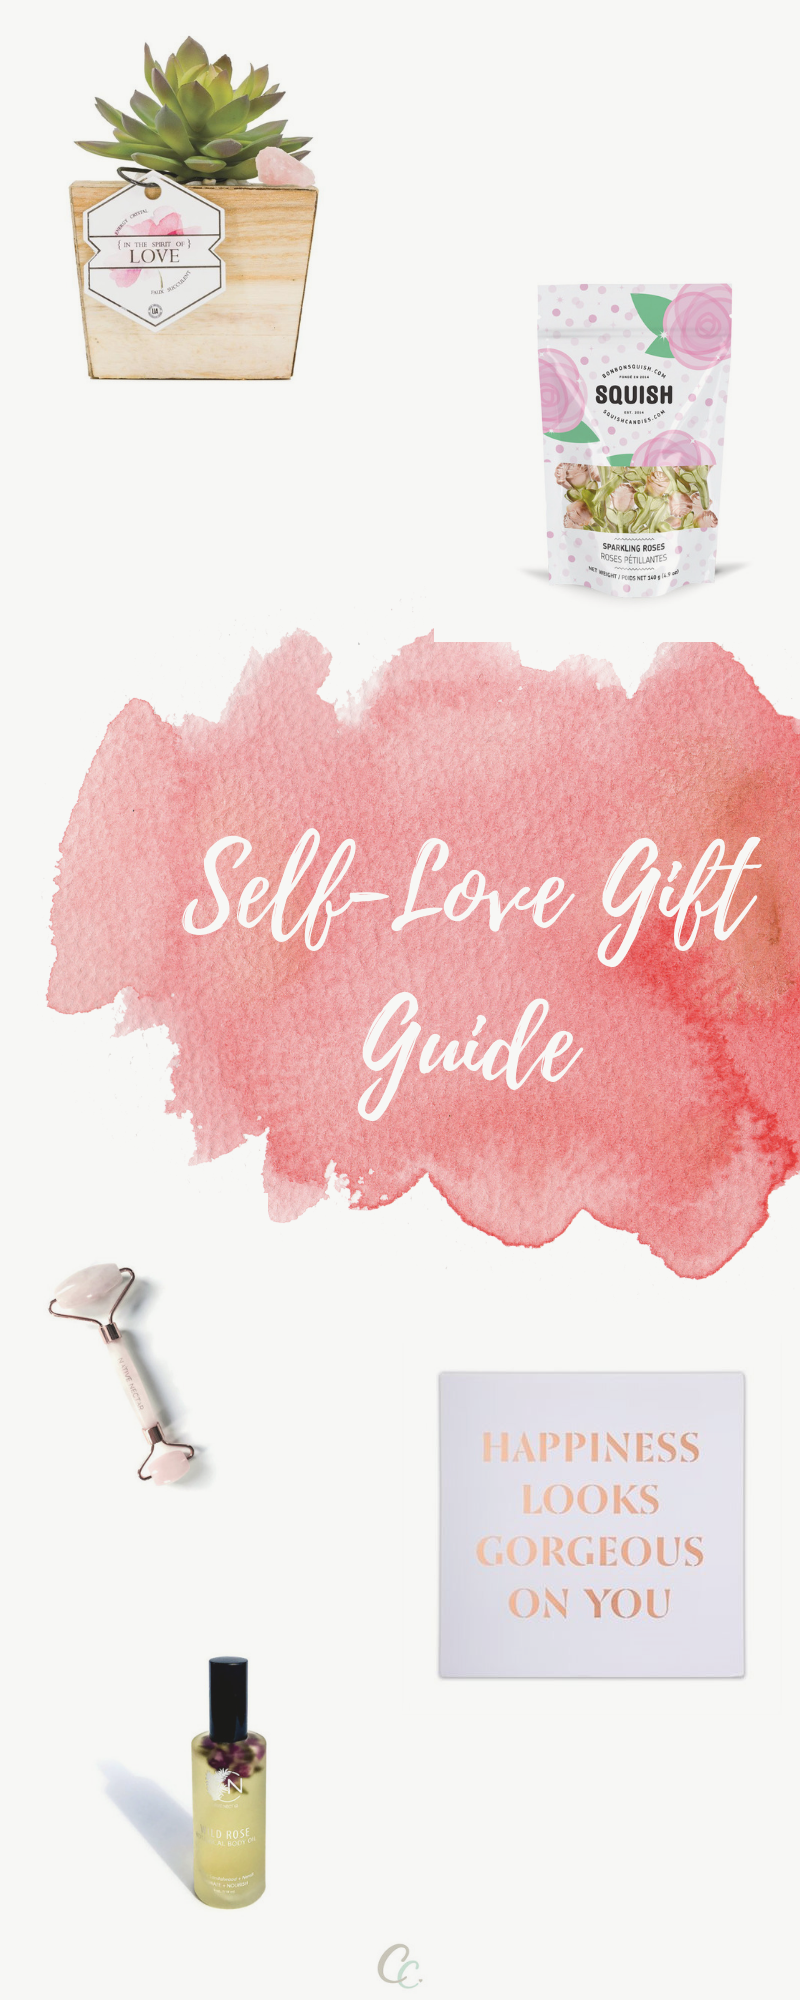 Self-Love Gift Guide.png